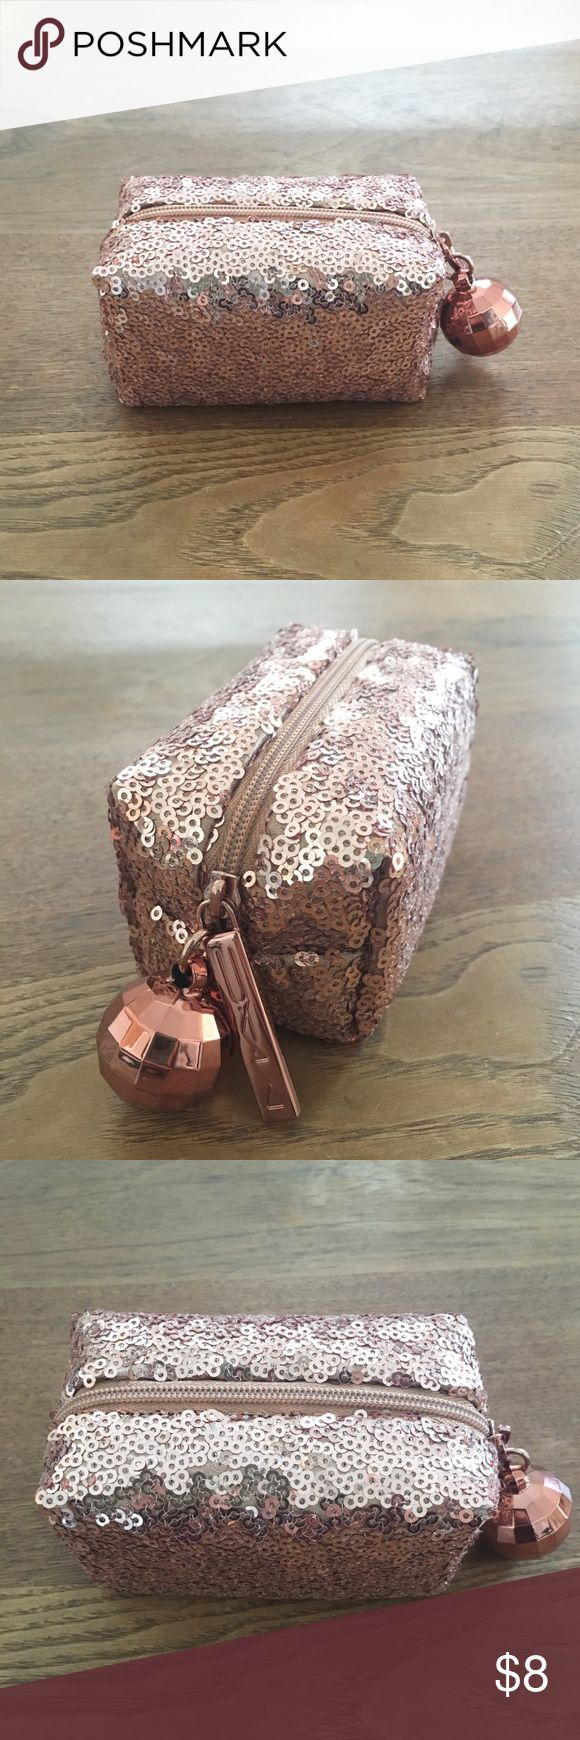 Sparkly Rose Gold MAC Makeup Bag BRAND NEW adorable sequined rose gold mini makeup bag by MAC MAC Cosmetics Bags Cosmetic Bags & Cases